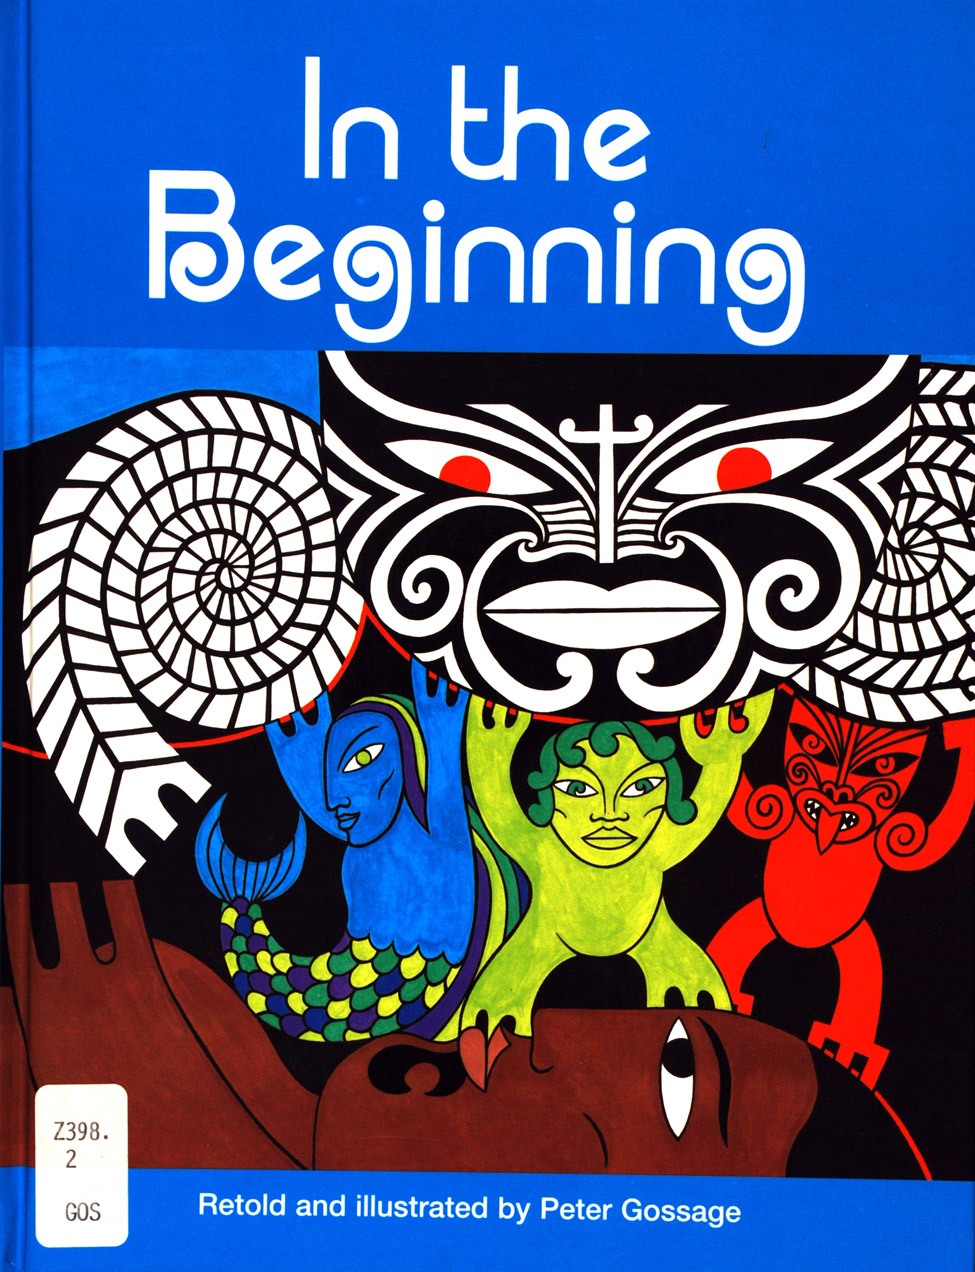 <i>In the Beginning; Retold and Illustrated by Peter Gossage. </i> Auckland: Scholastic New Zealand Limited, 2001.